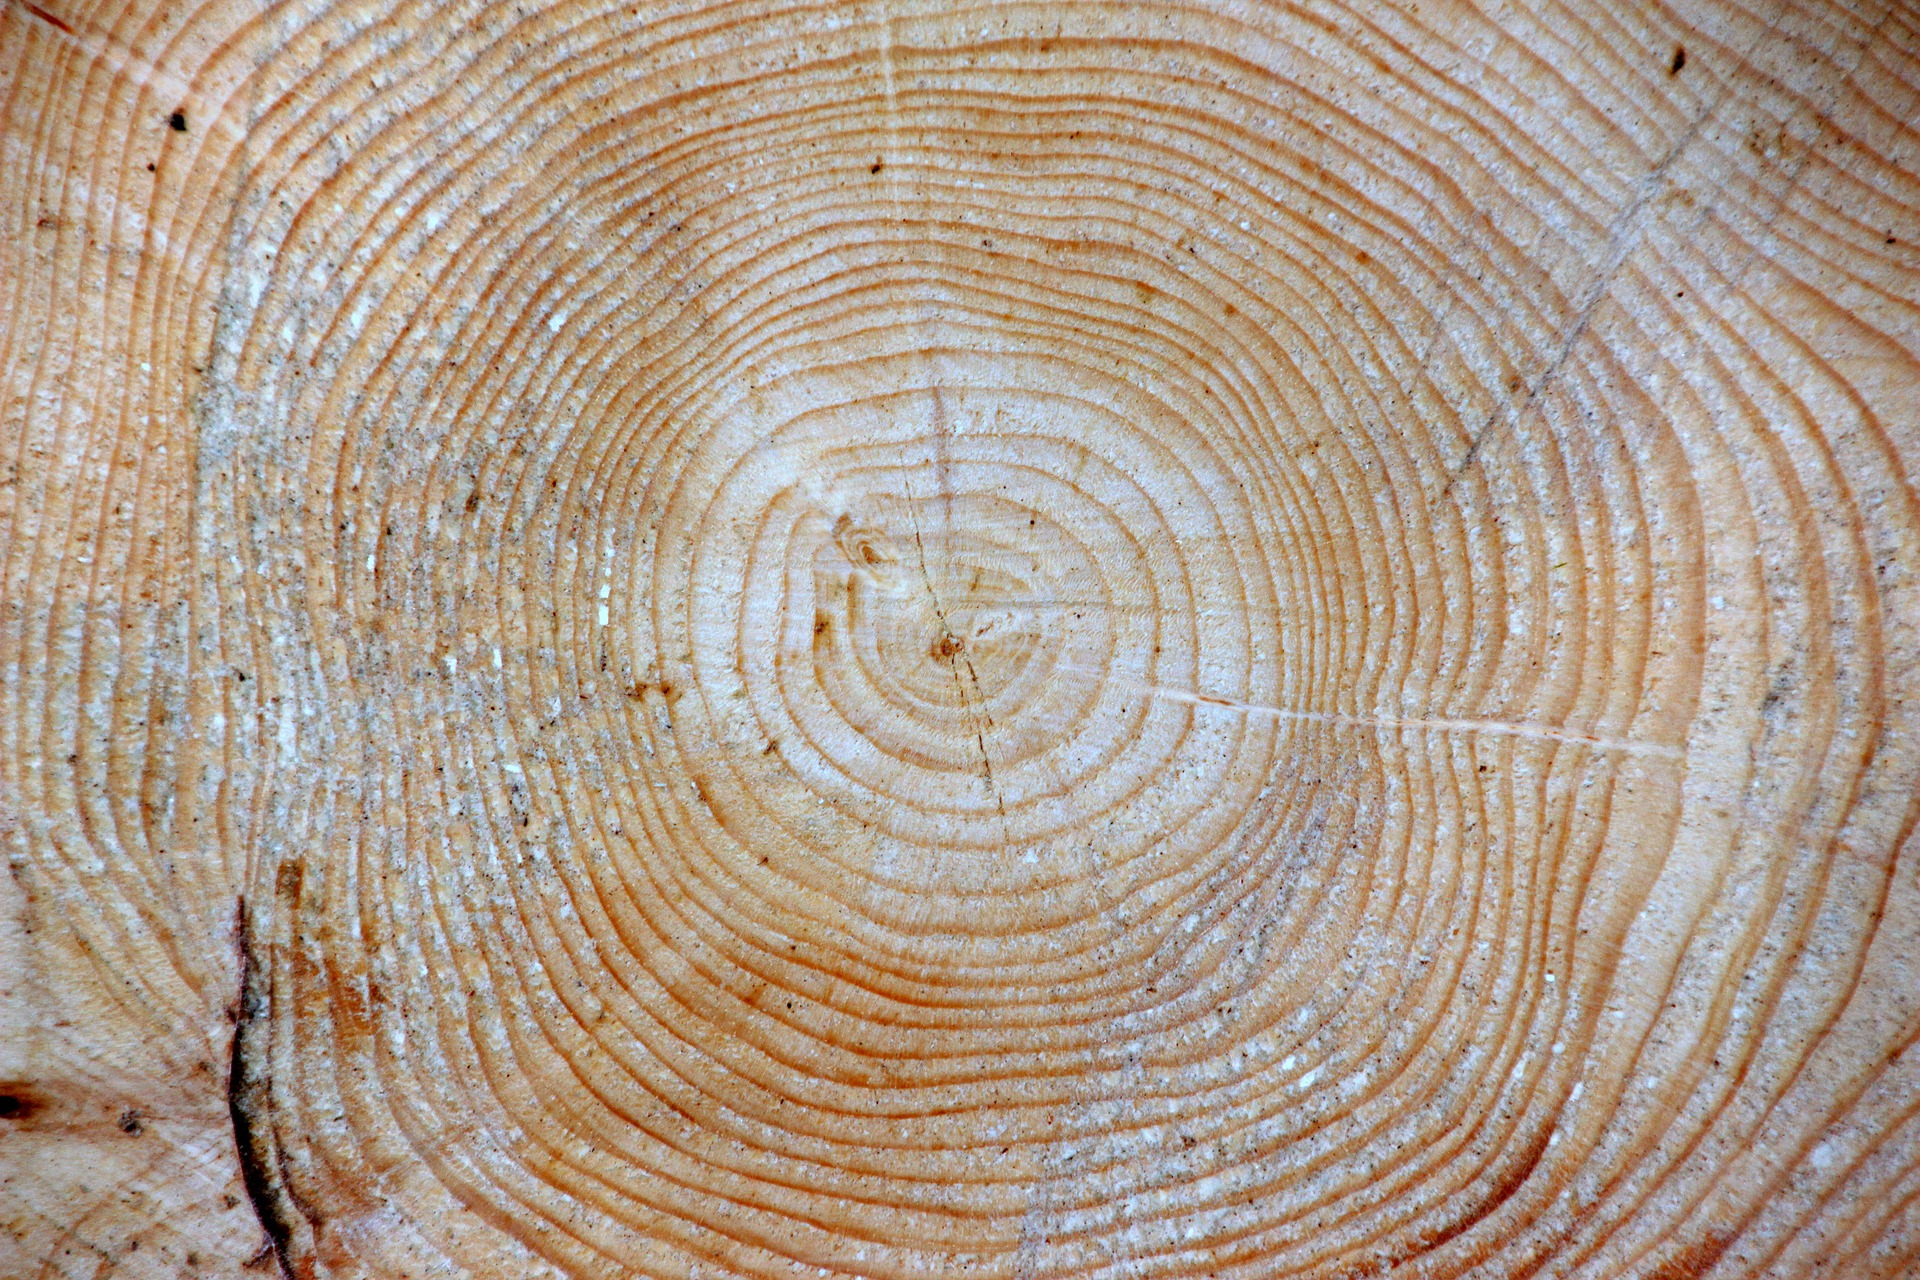 Wooden Log Texture, Circles, Cut, Log, Section, HQ Photo